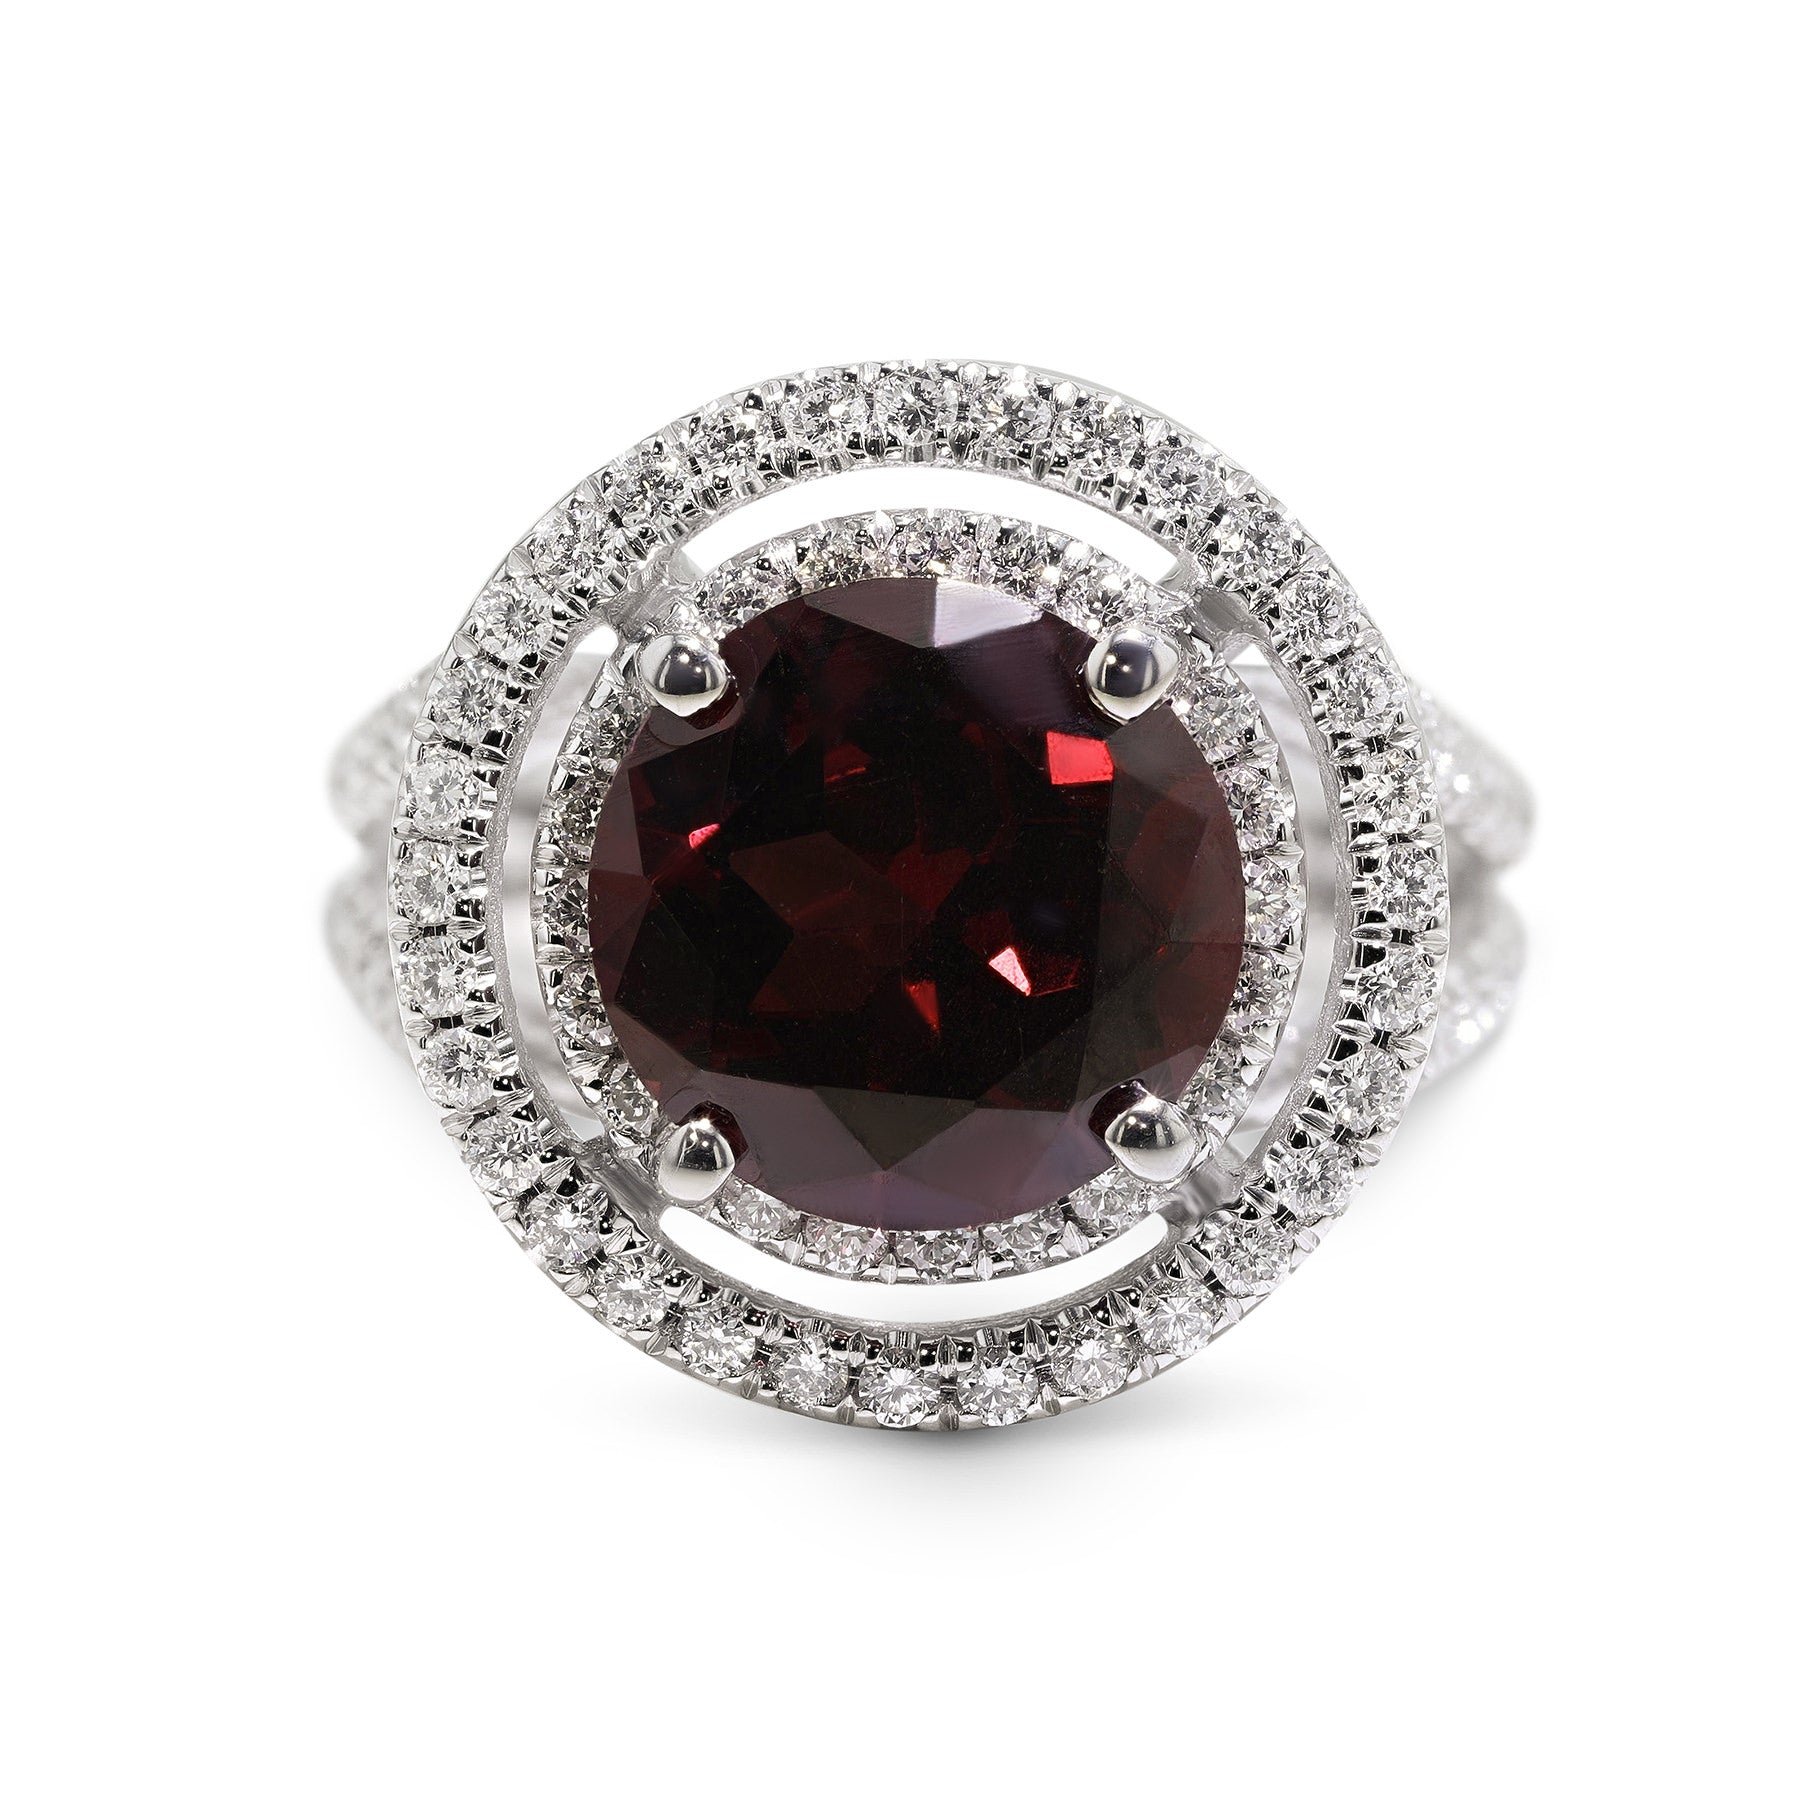 5 CARAT NATURAL RED TOURMALINE - 14K WHITE GOLD DOUBLE HALO ENGAGEMENT RING #BBG10003